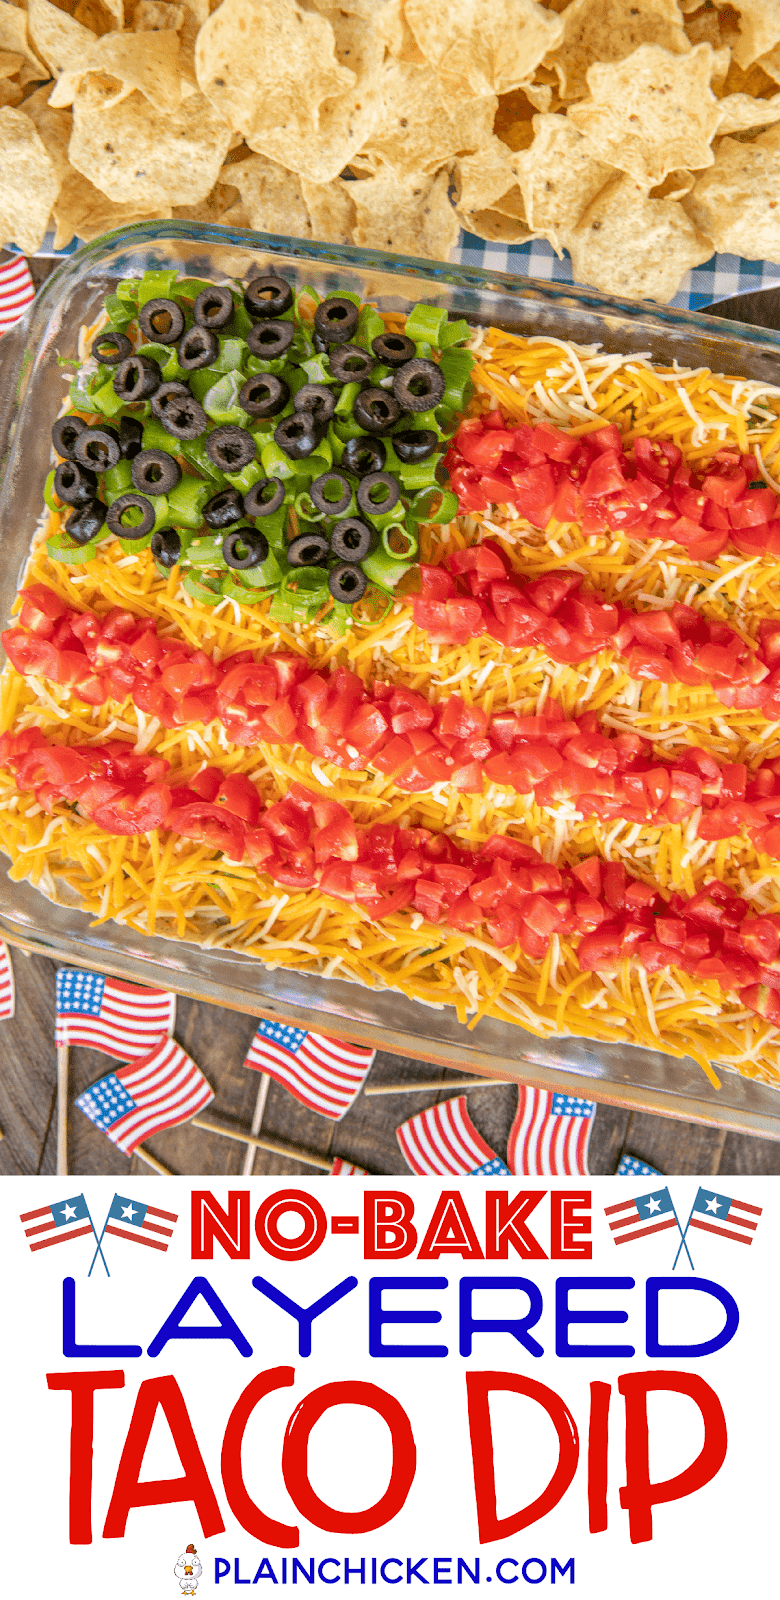 taco dip in 9x13-inch pan with chips